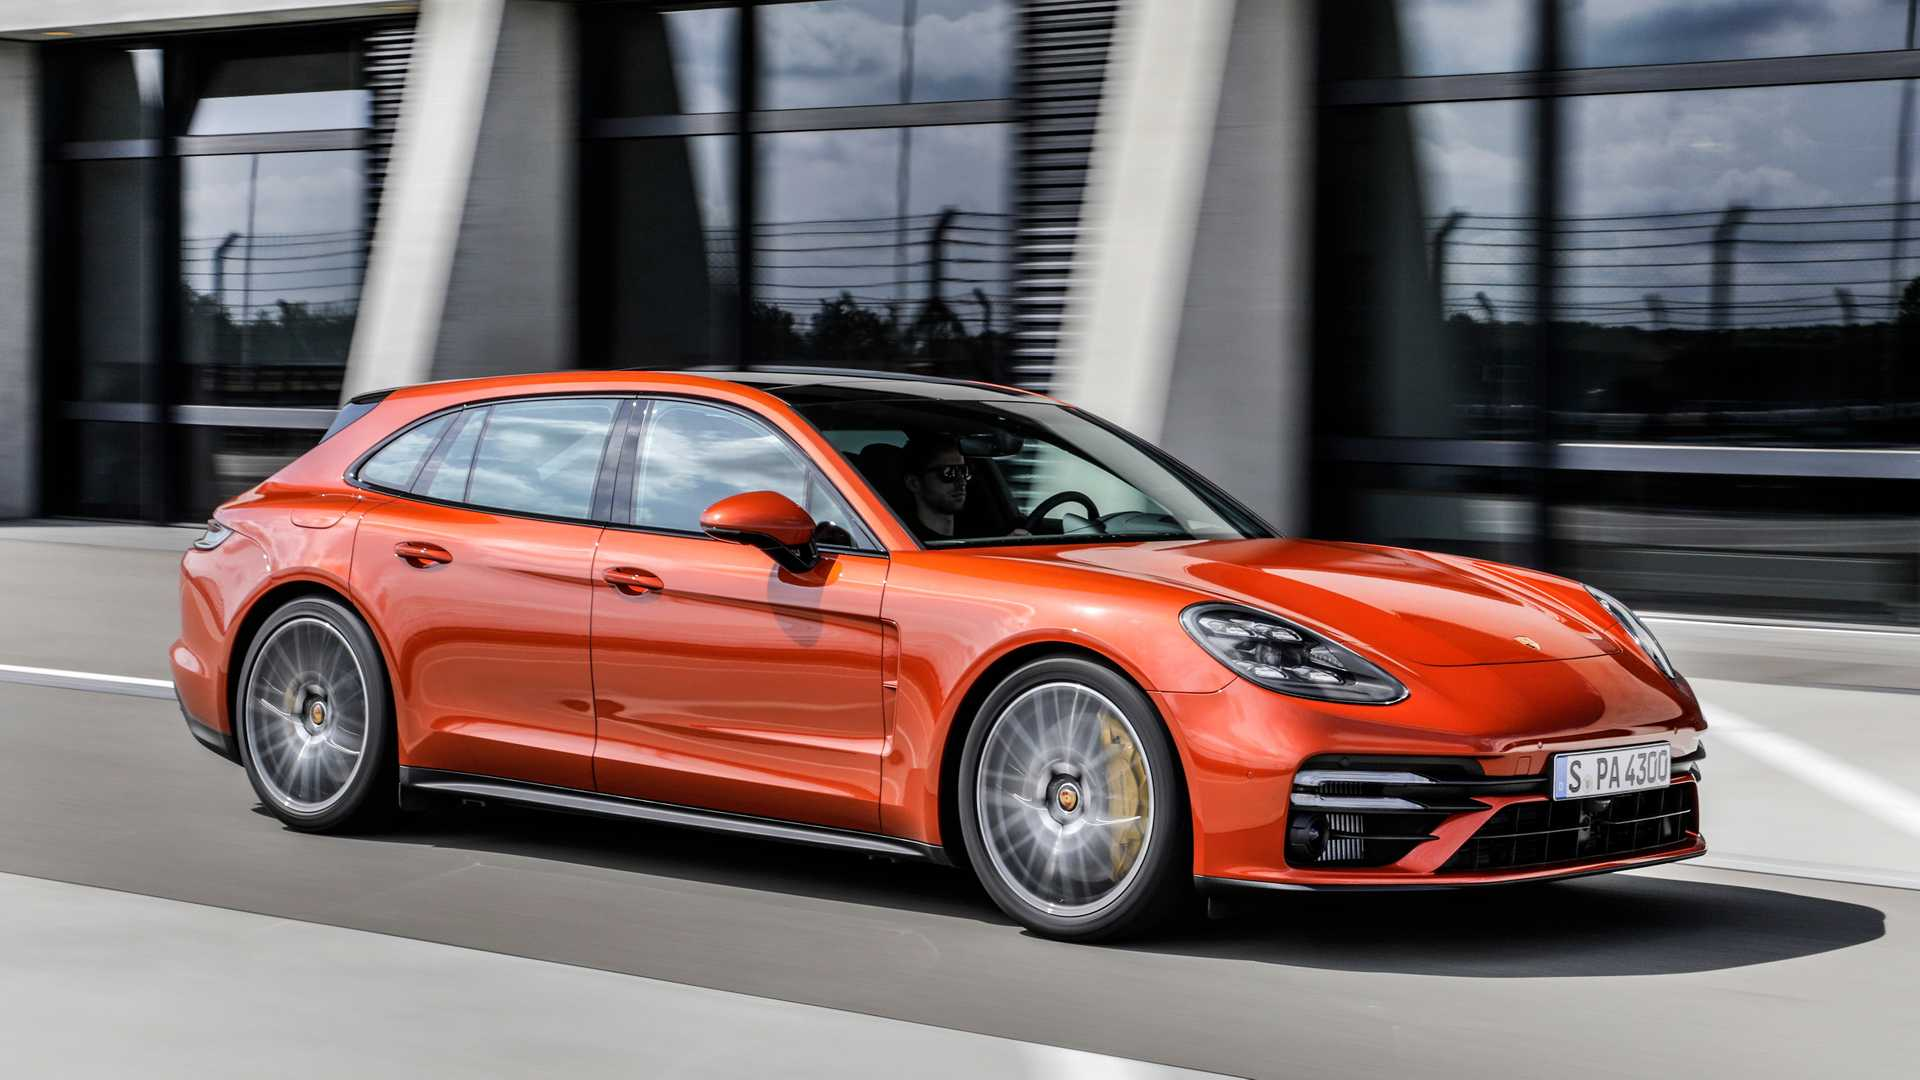 2021 The Porsche Panamera Performance and New Engine